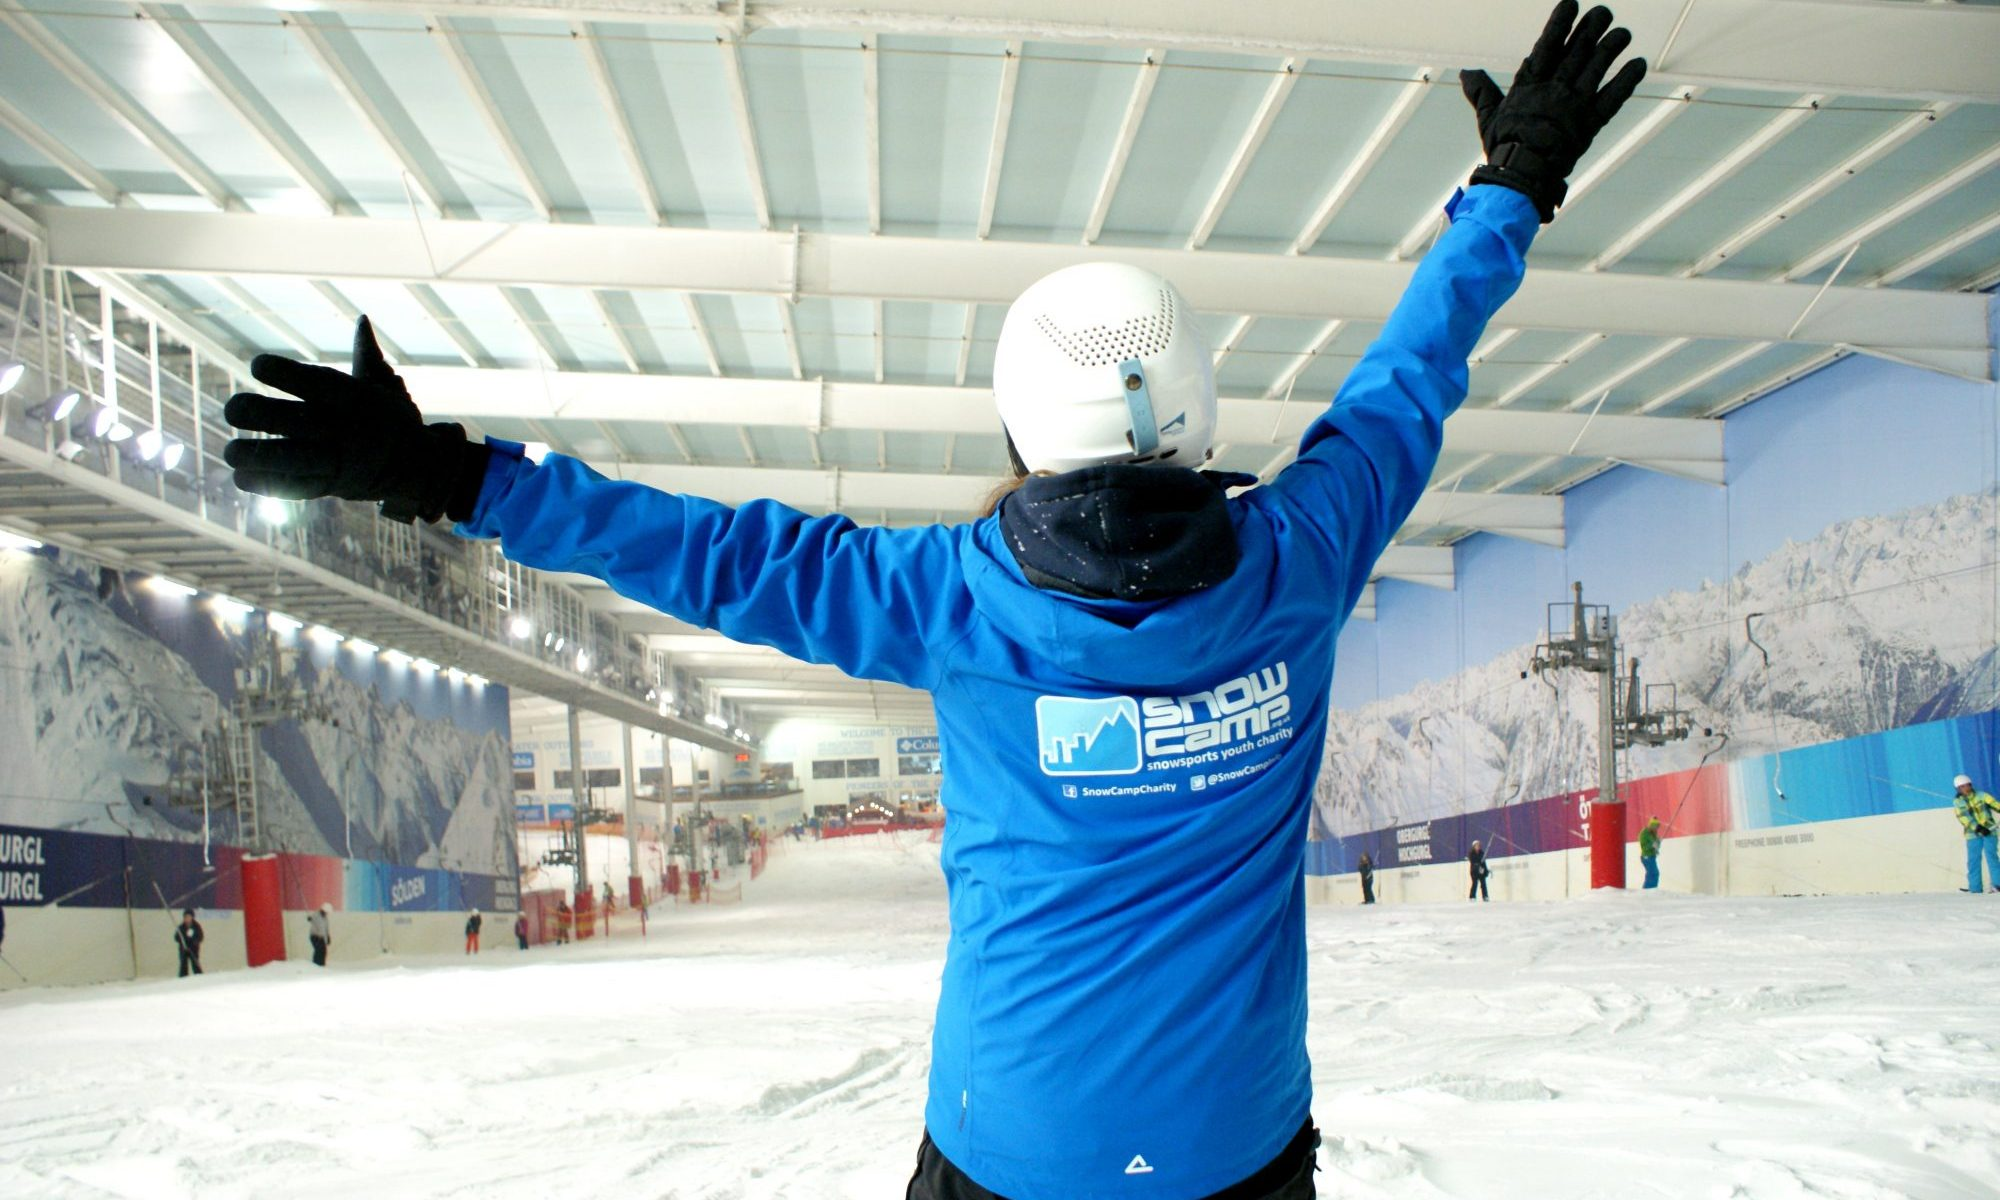 Skiworld raise £15,000 for charity partner, Snow-Camp. Photo: Snow-Camp-Skiworld.